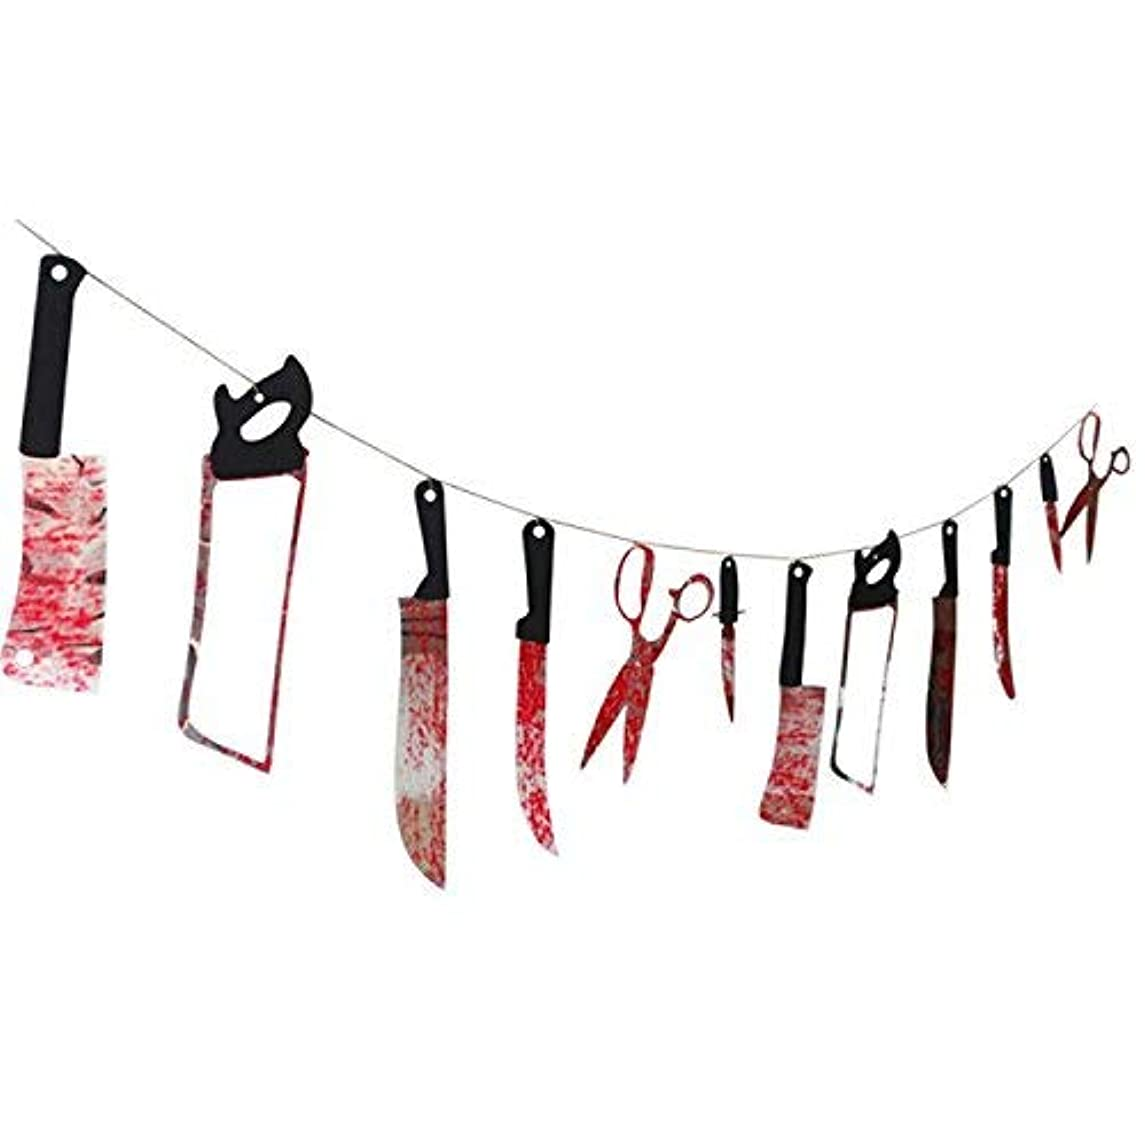 Kesoto 12 PCS Halloween Hanging Bloody Knife Weapons Garland Banner Halloween Zombie Vampire Party Decorations Supplies - 7.8 Ft Long